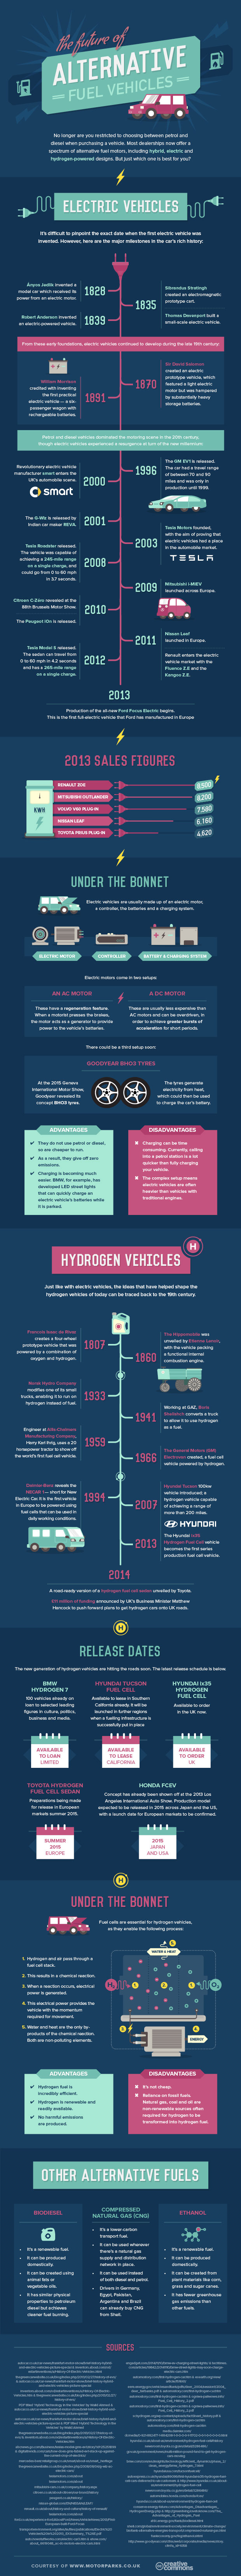 The Future of Alternative Fuel Vehicles - Motorparks